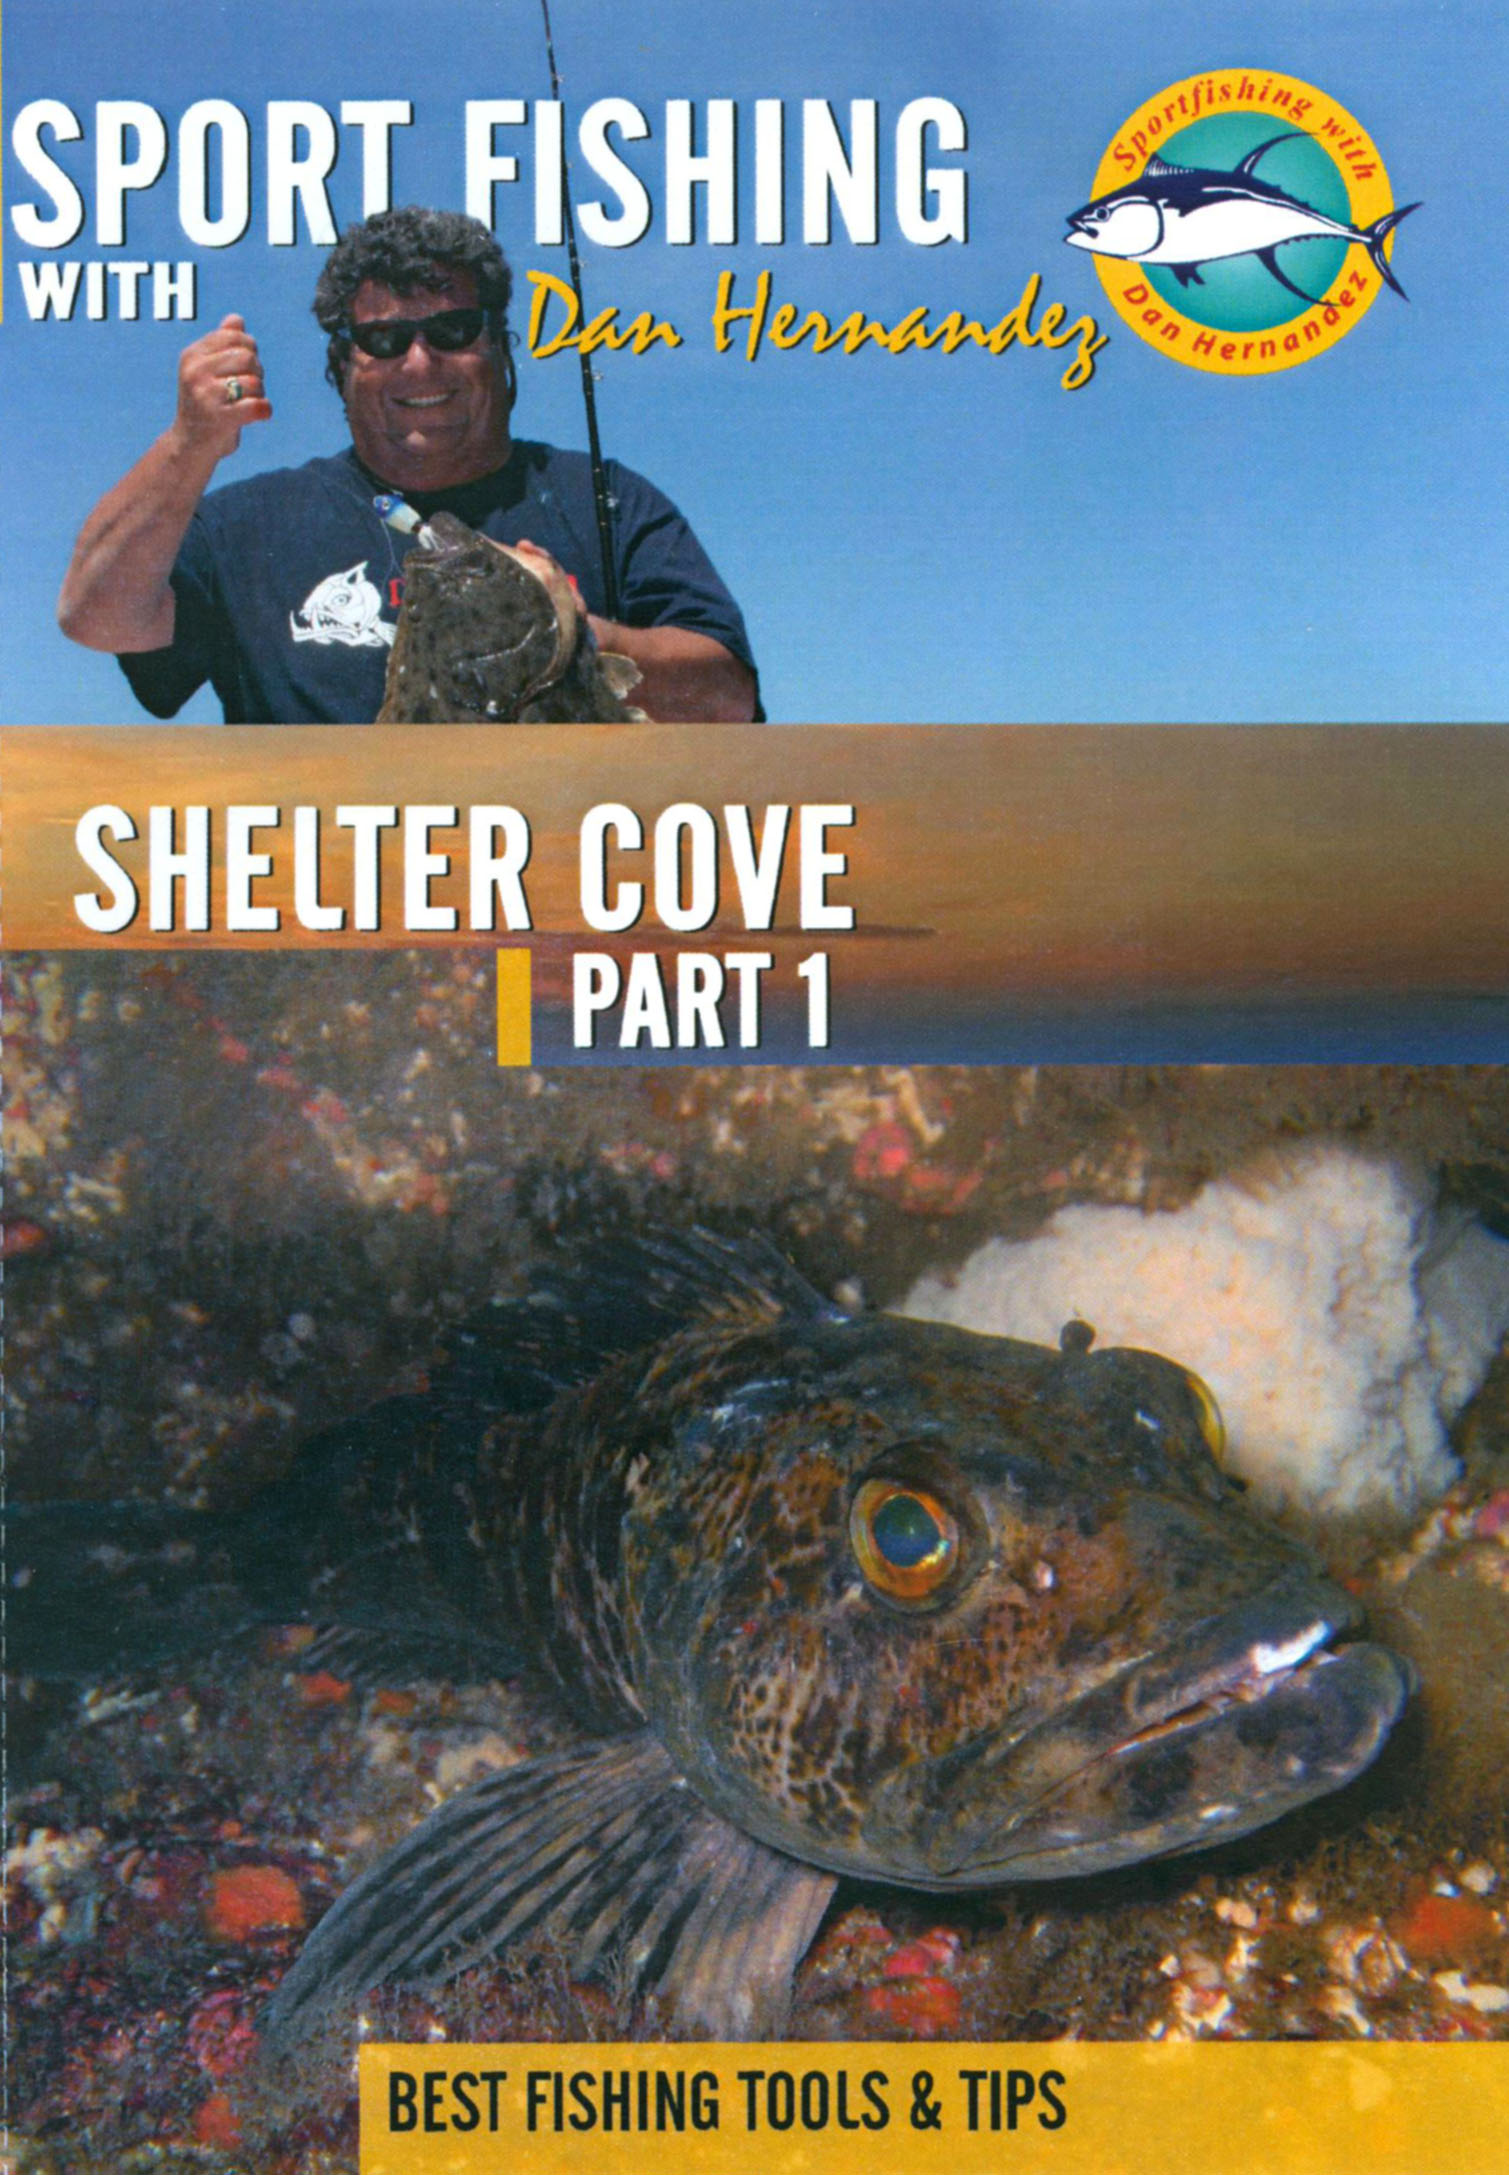 Sport Fishing With Dan Hernandez: Shelter Cove, Part 1